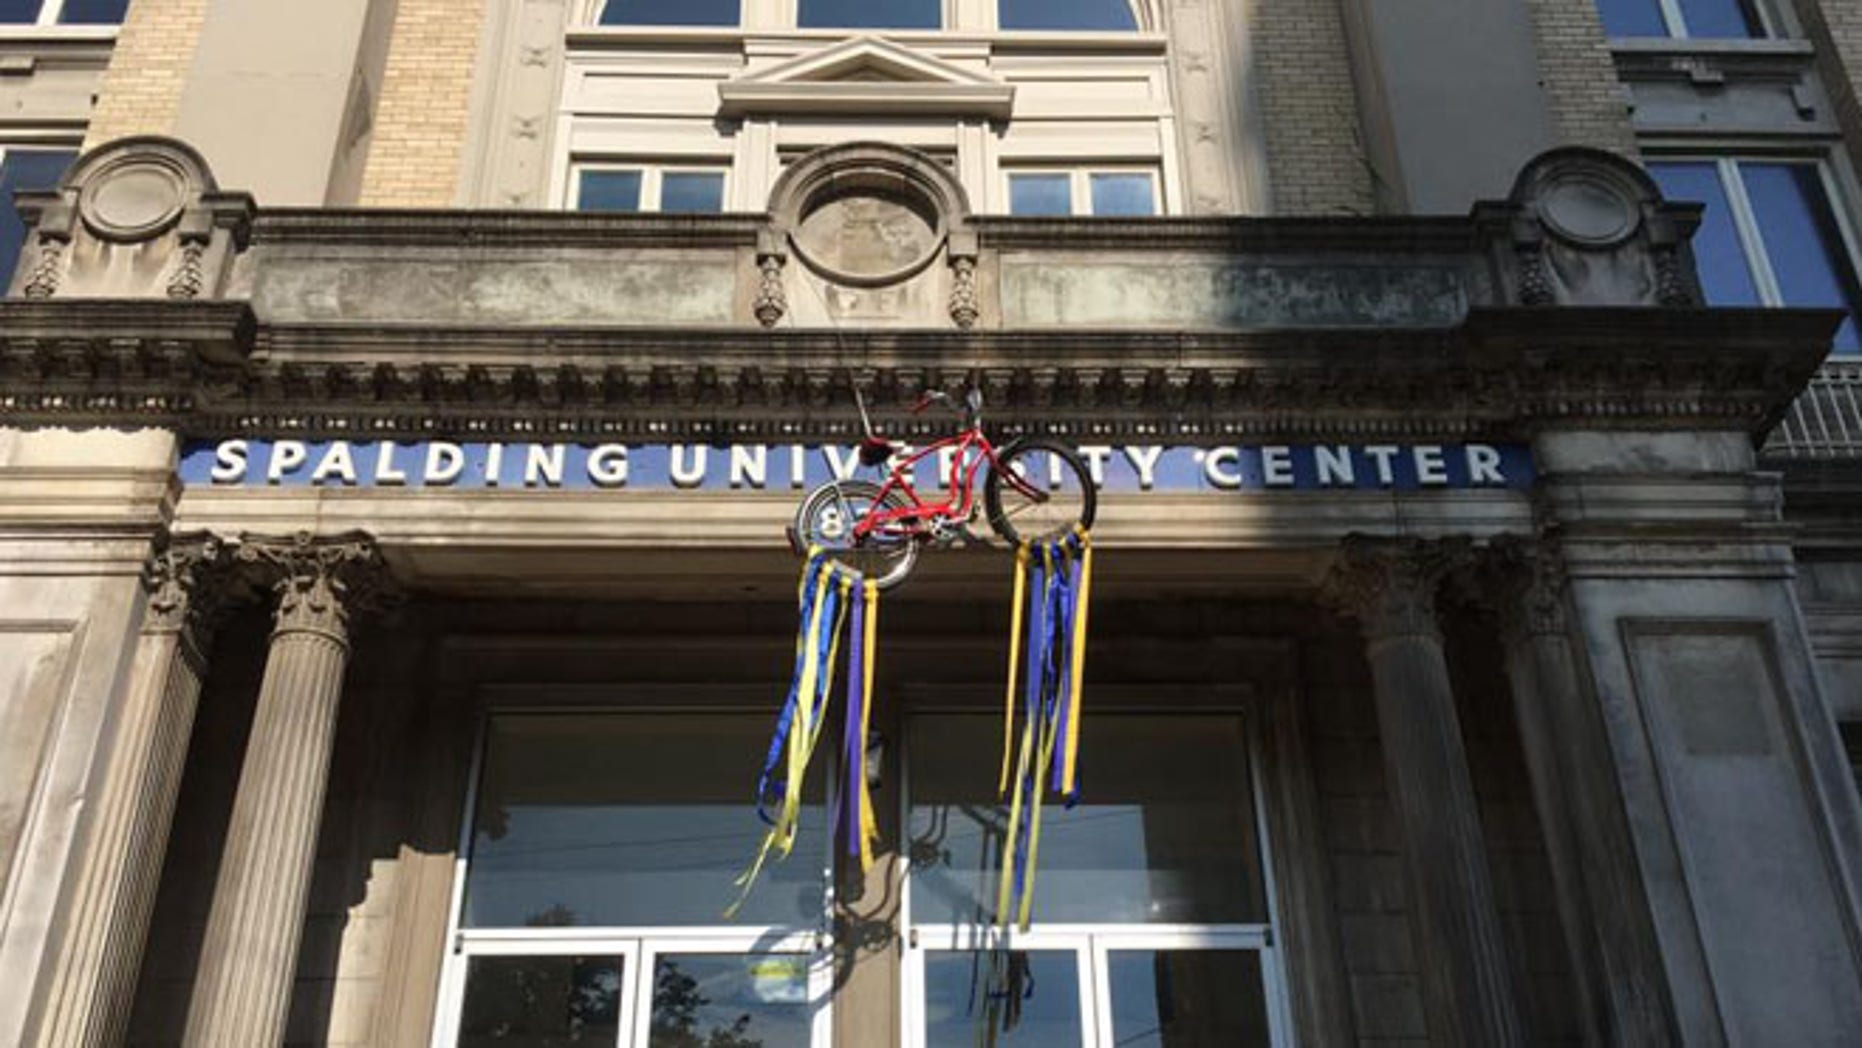 Spalding University hung a red bicycle from school's University Center to commemorate Muhammad Ali. (Spalding University)